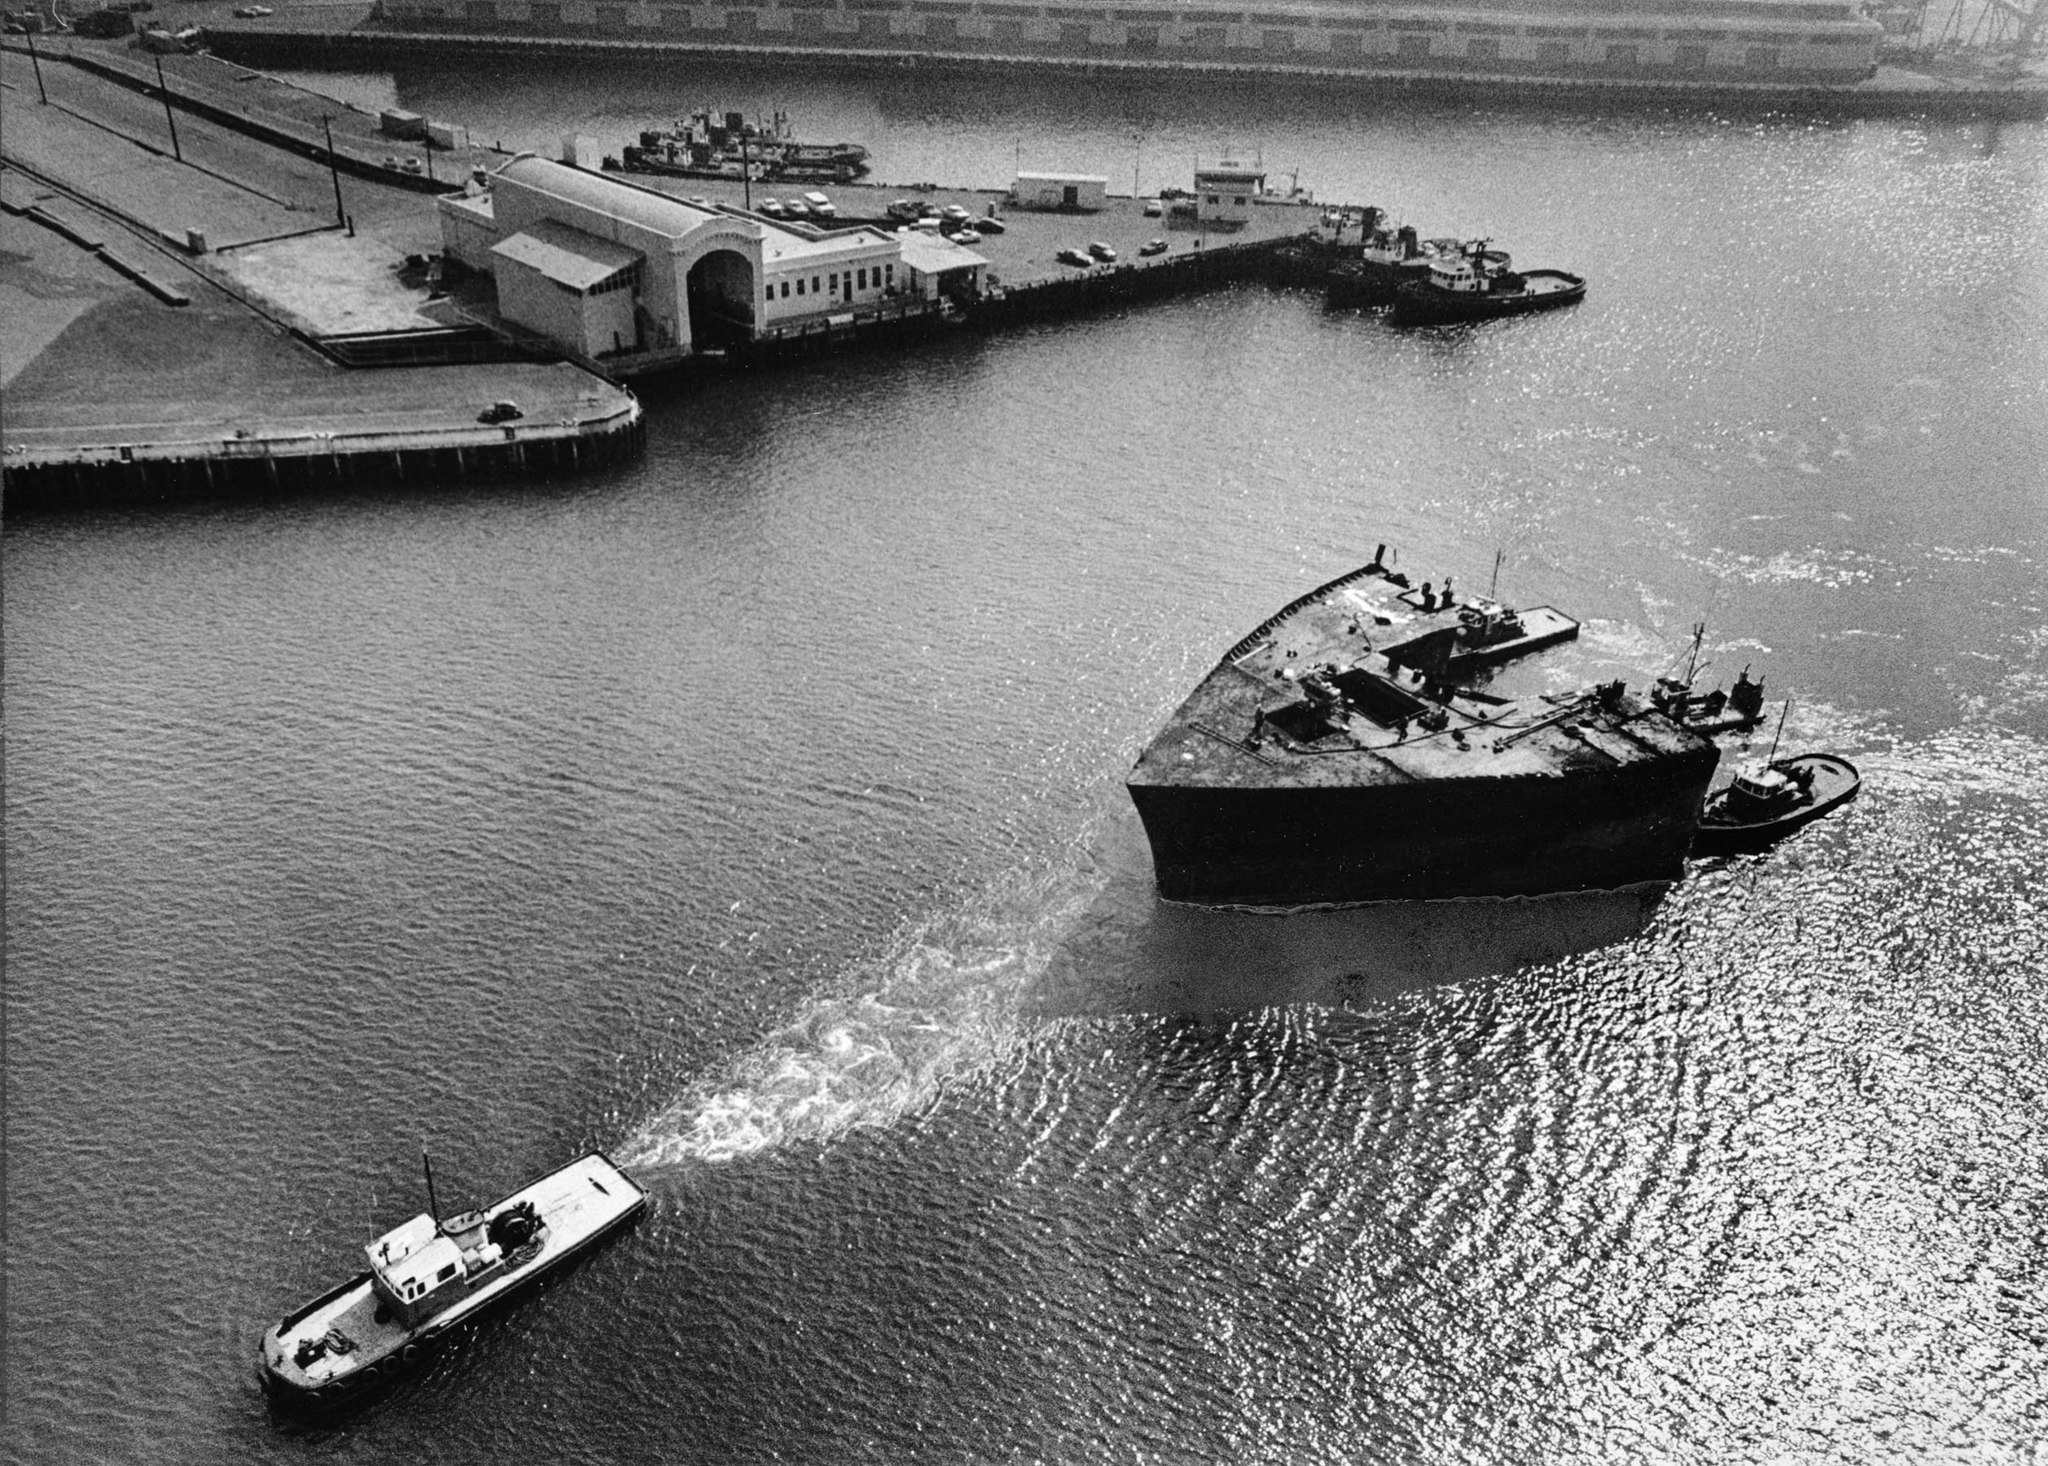 Feb. 19, 1977: The 1,217-ton bow section of the oil tanker Sansinena is towed to a Terminal Island s